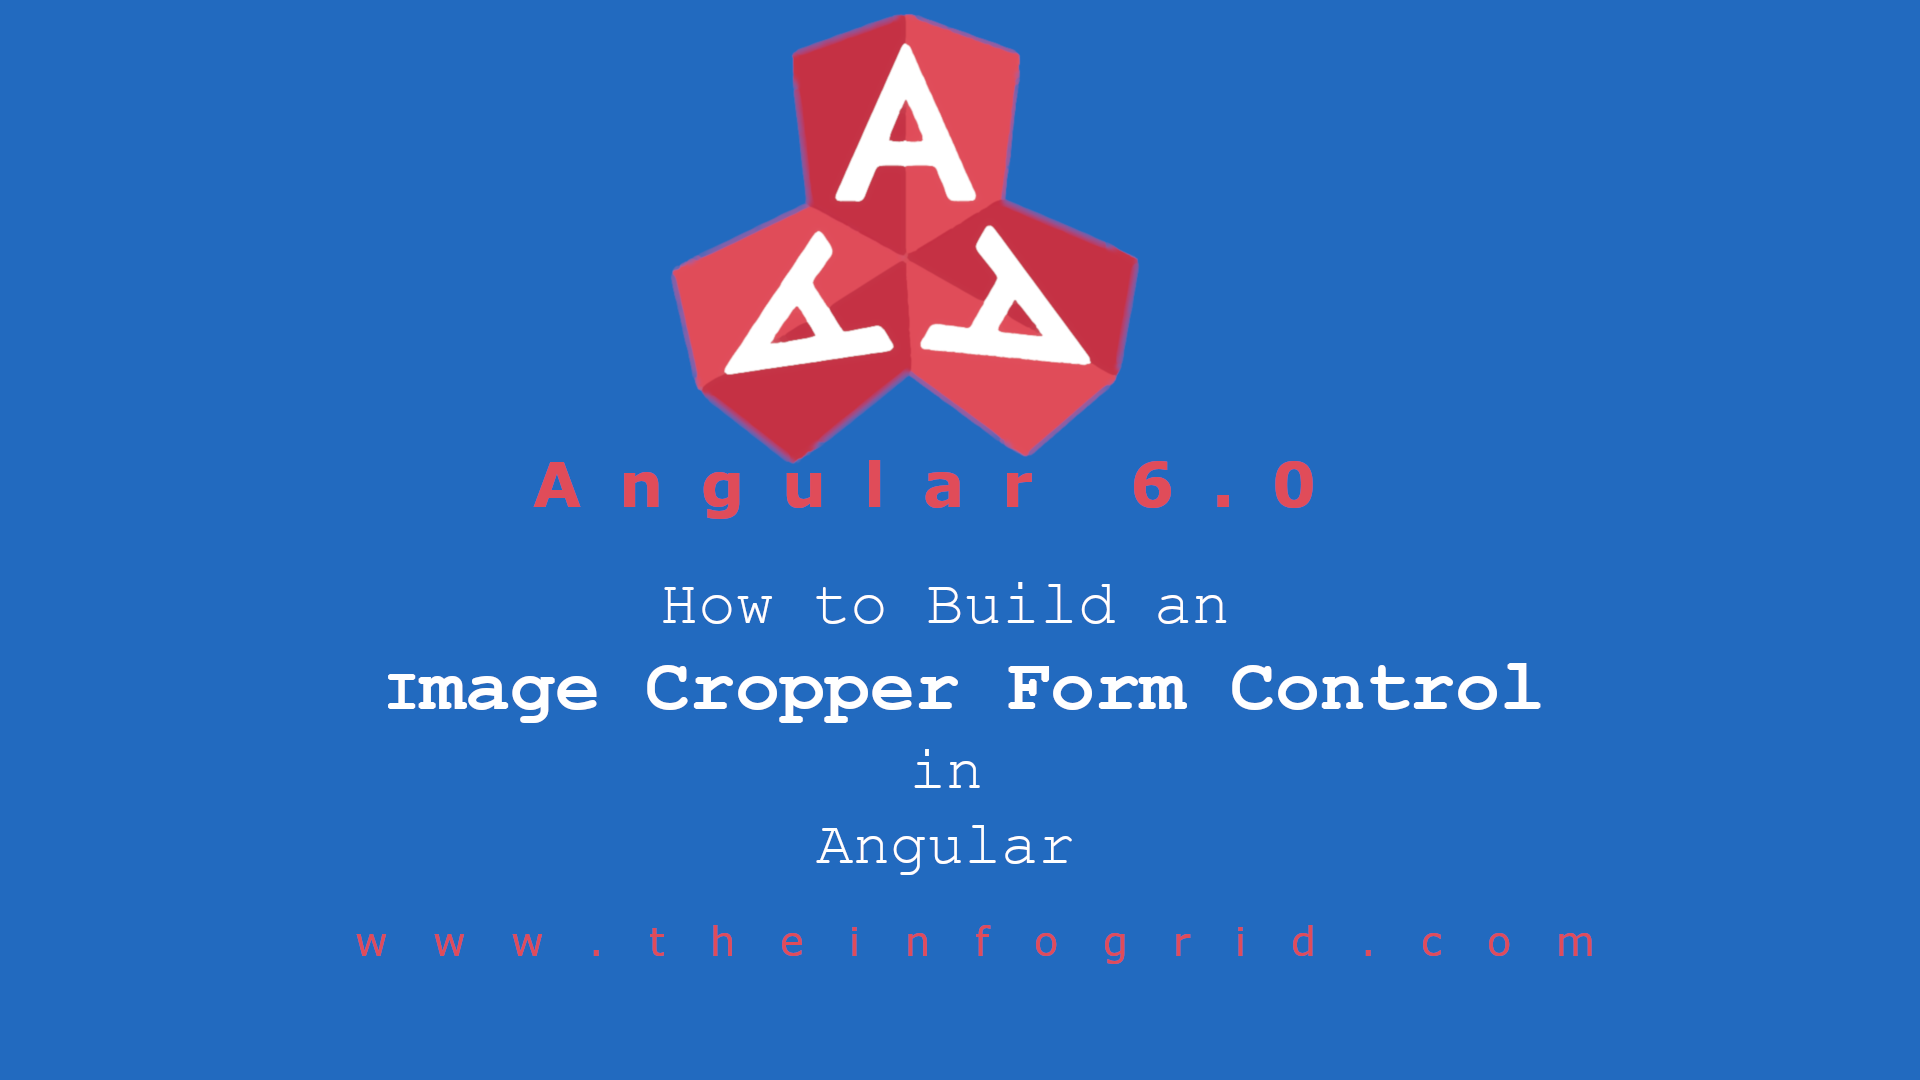 How to build an image cropper form control in angular